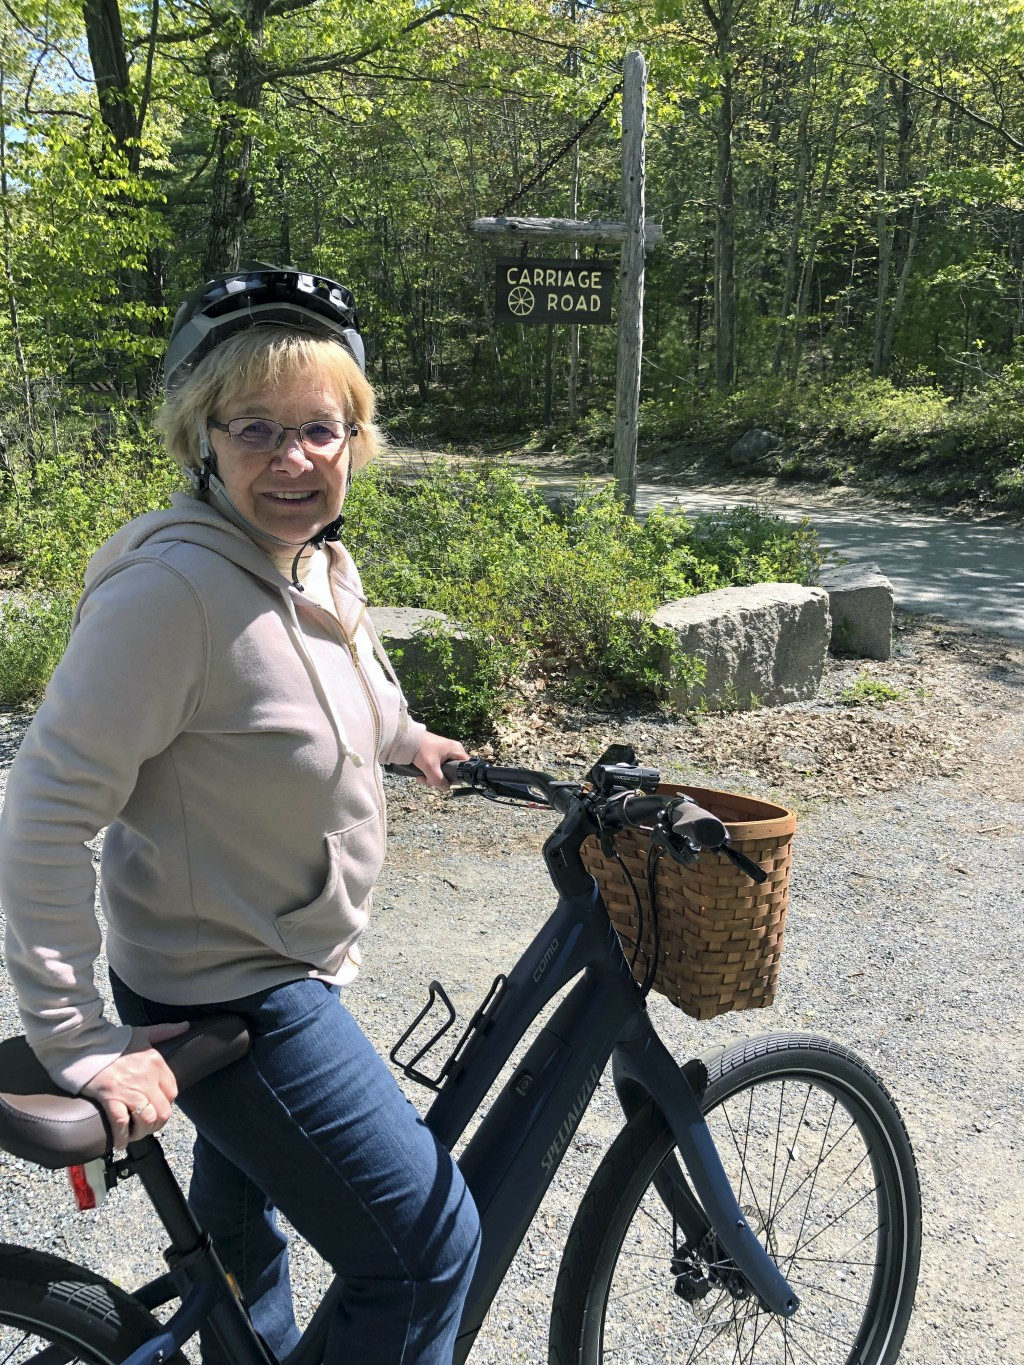 In this June 8, 2019 photo, Janice Goodwin stops her electric-assist bicycle gate near a carriage path in Acadia National Park at Bar Harbor, Maine. E...